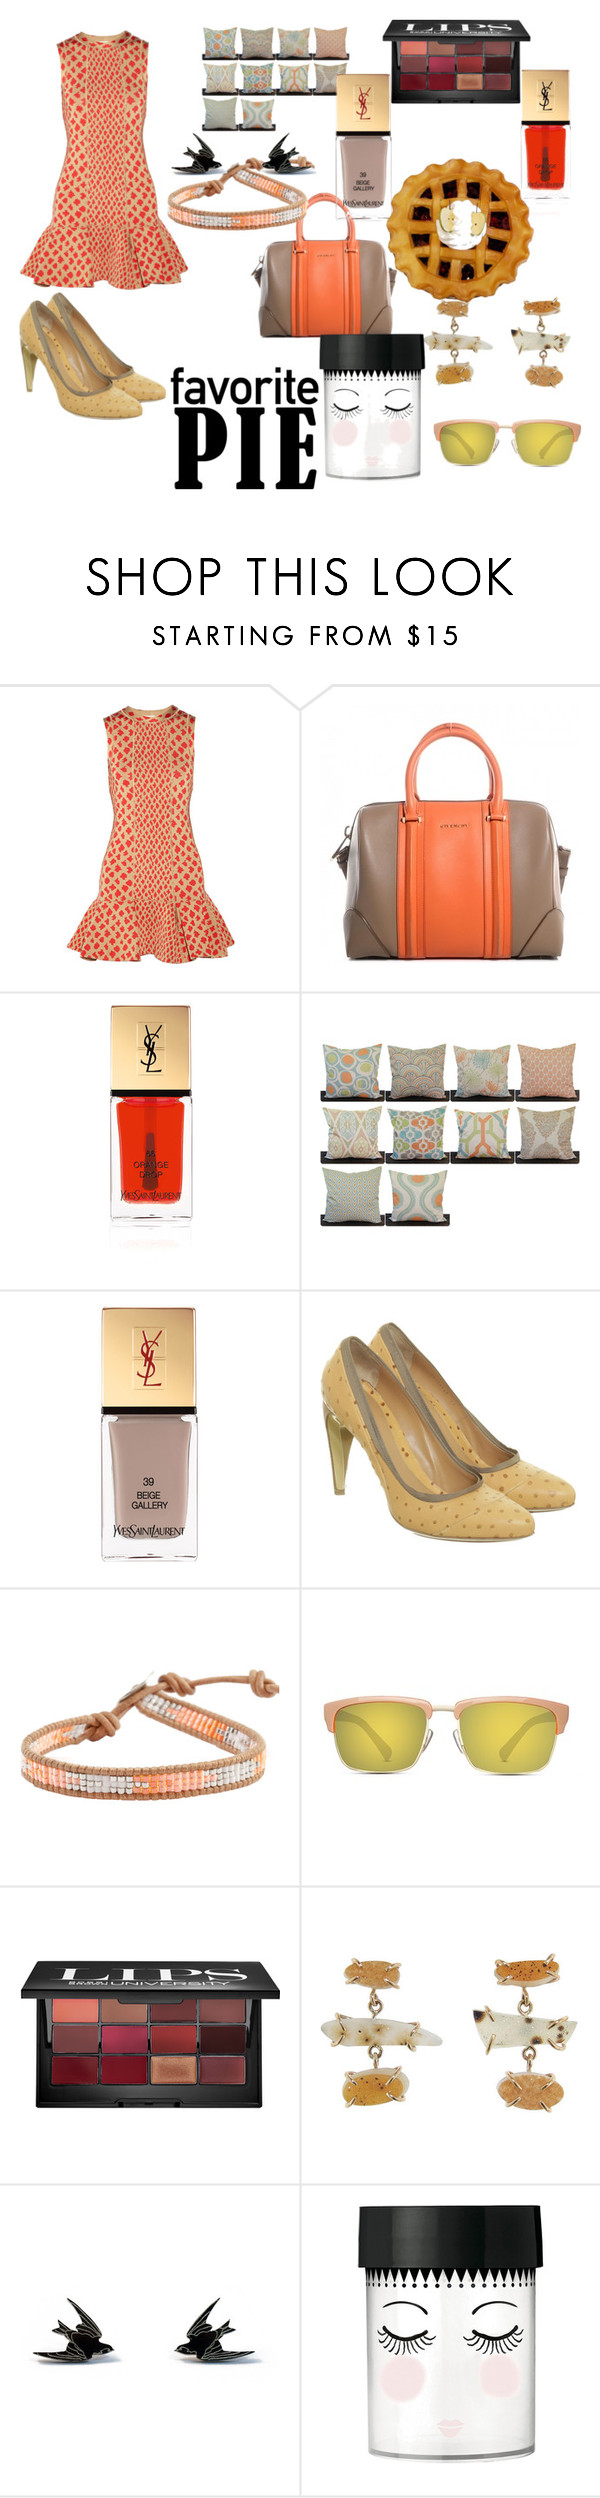 """""""Untitled #1125"""" by cecjones ❤ liked on Polyvore featuring Issa, Givenchy, Yves Saint Laurent, BOSS Orange, Chan Luu, GlassesUSA, Bobbi Brown Cosmetics, Wolf & Moon, women's clothing and women's fashion"""